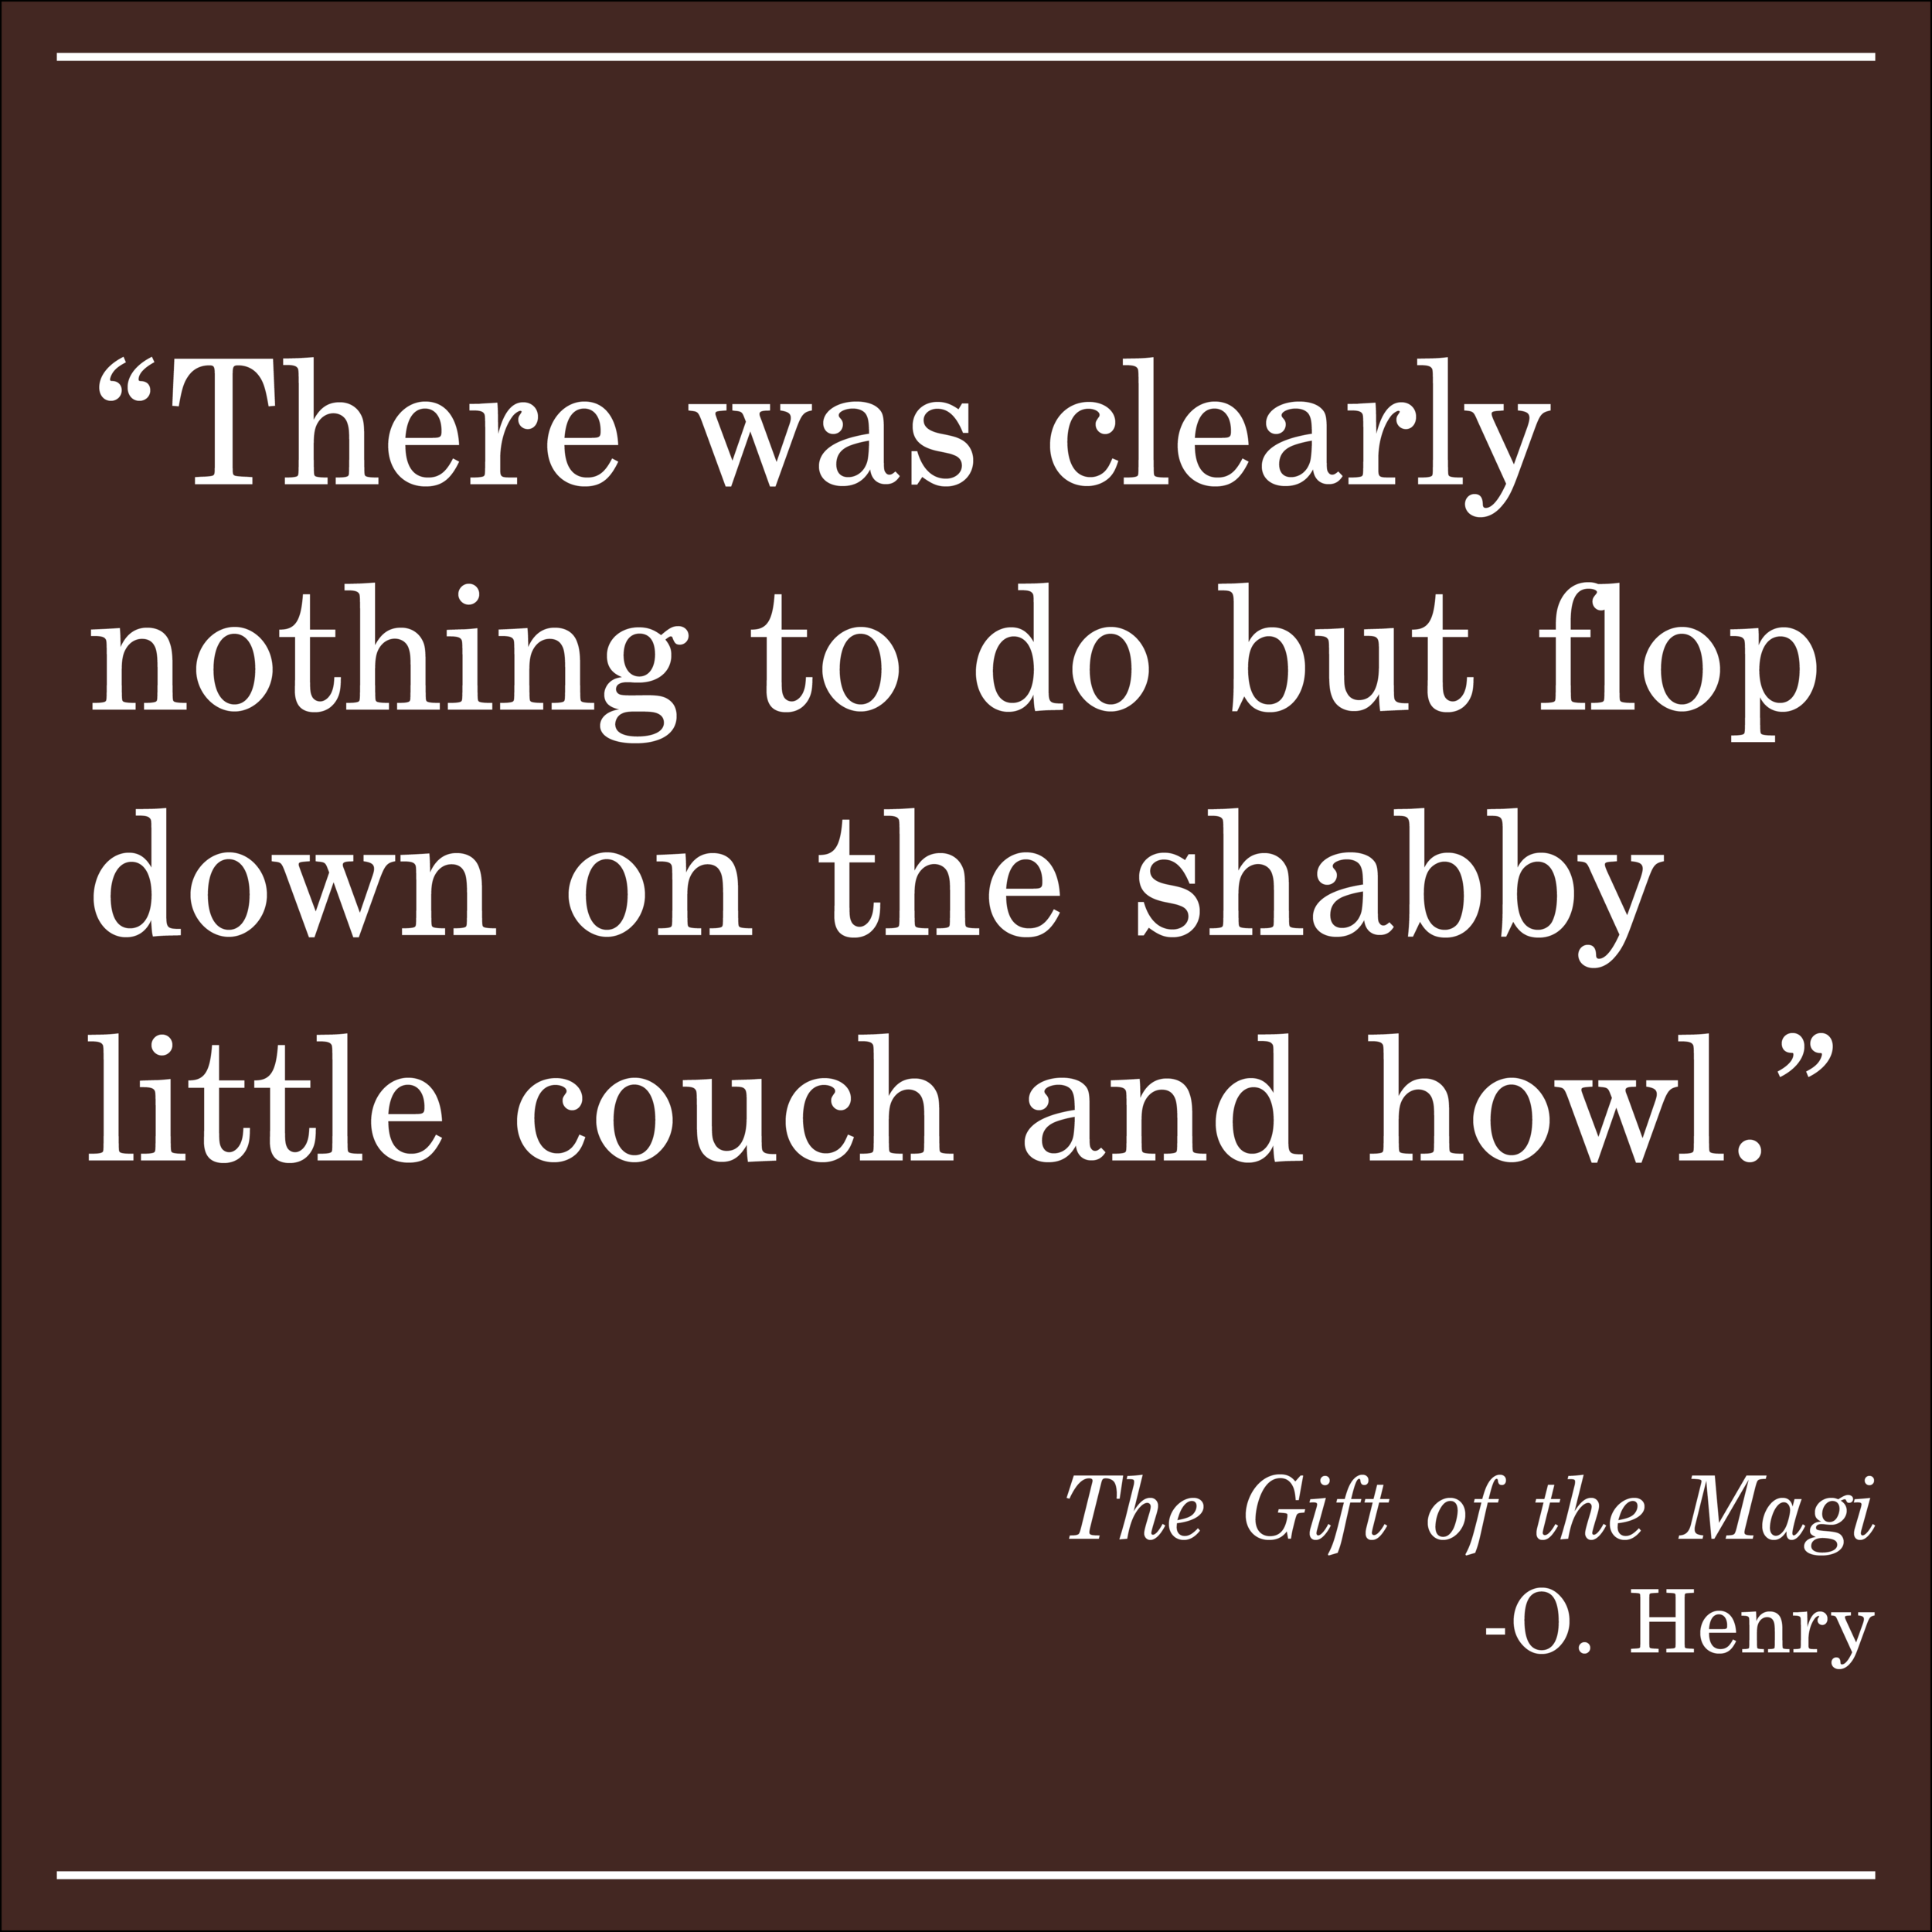 Daily Quote O Henry The Gift of the Magi